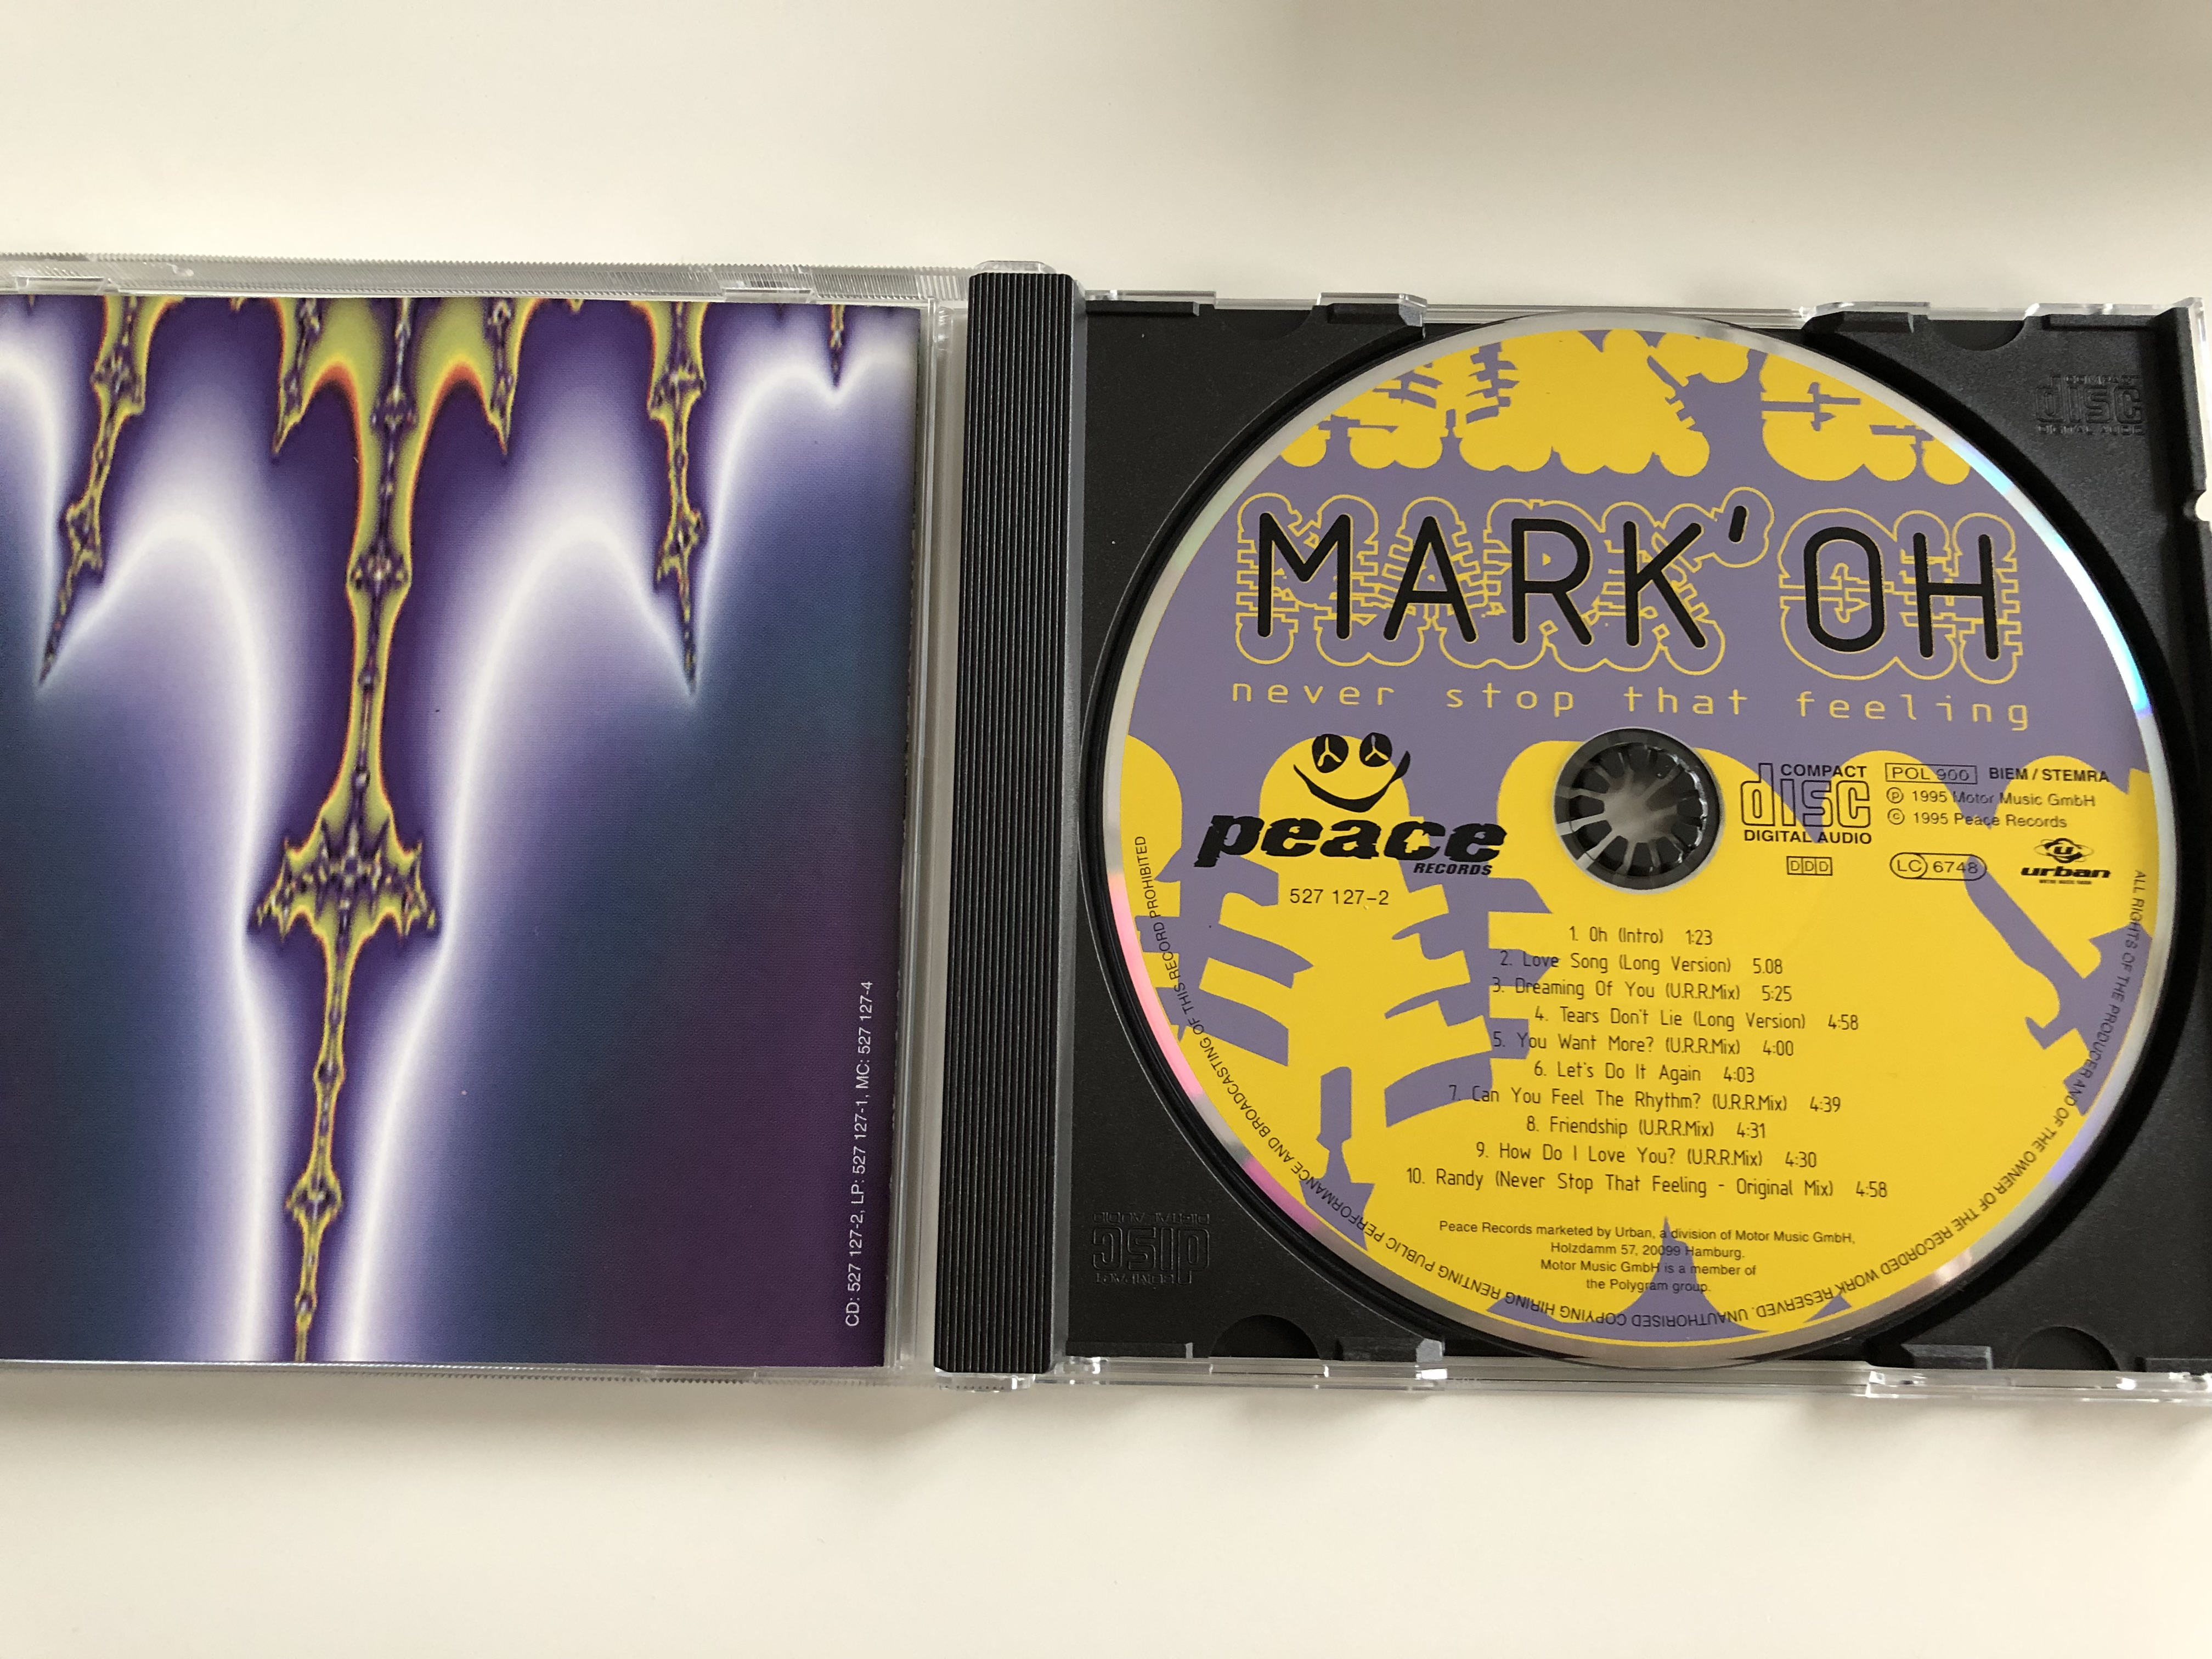 mark-oh-never-stop-that-feeling-peace-records-audio-cd-1995-527-127-2-3-.jpg